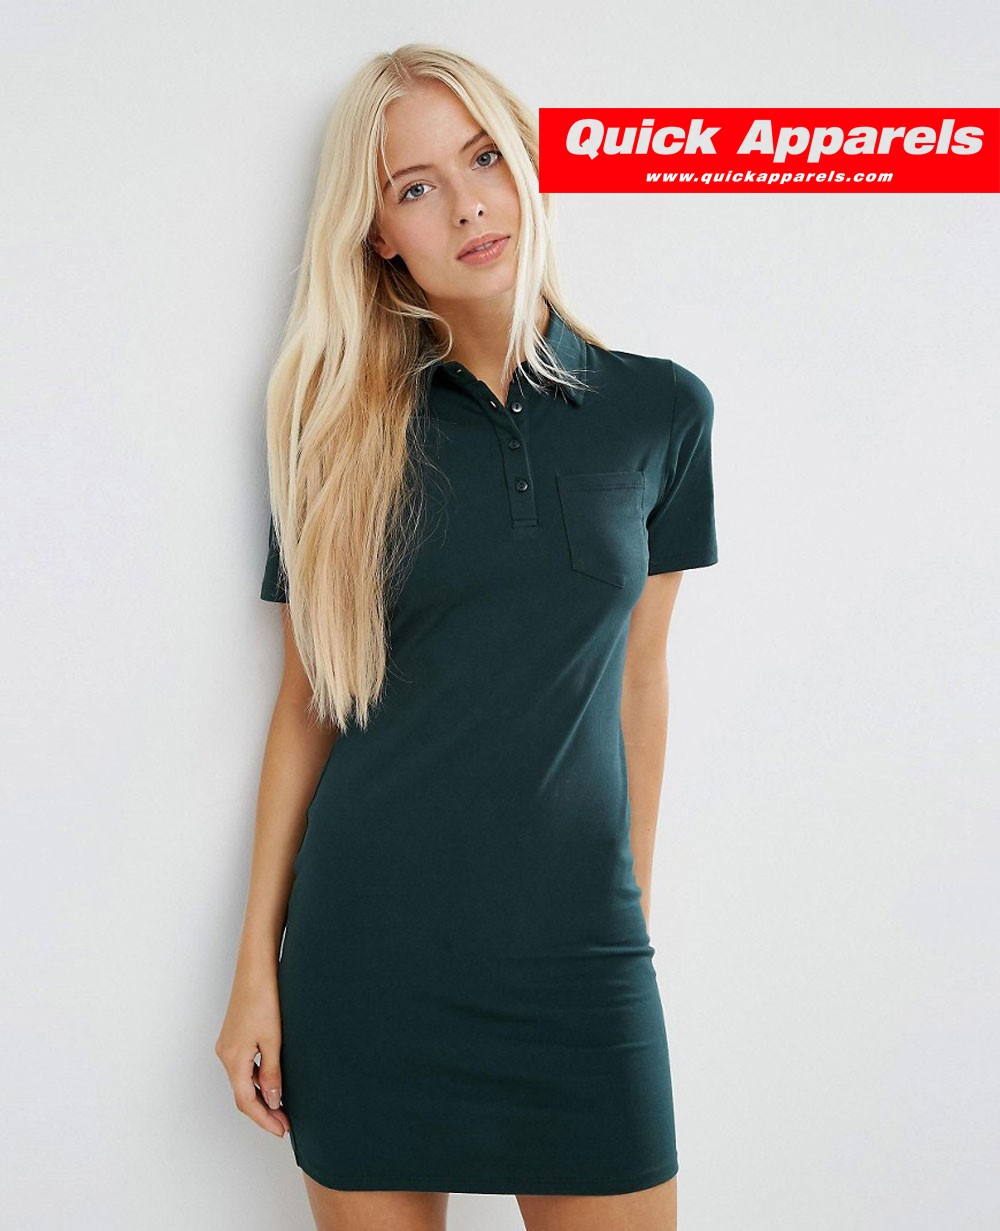 Women Polo Shirt Dress